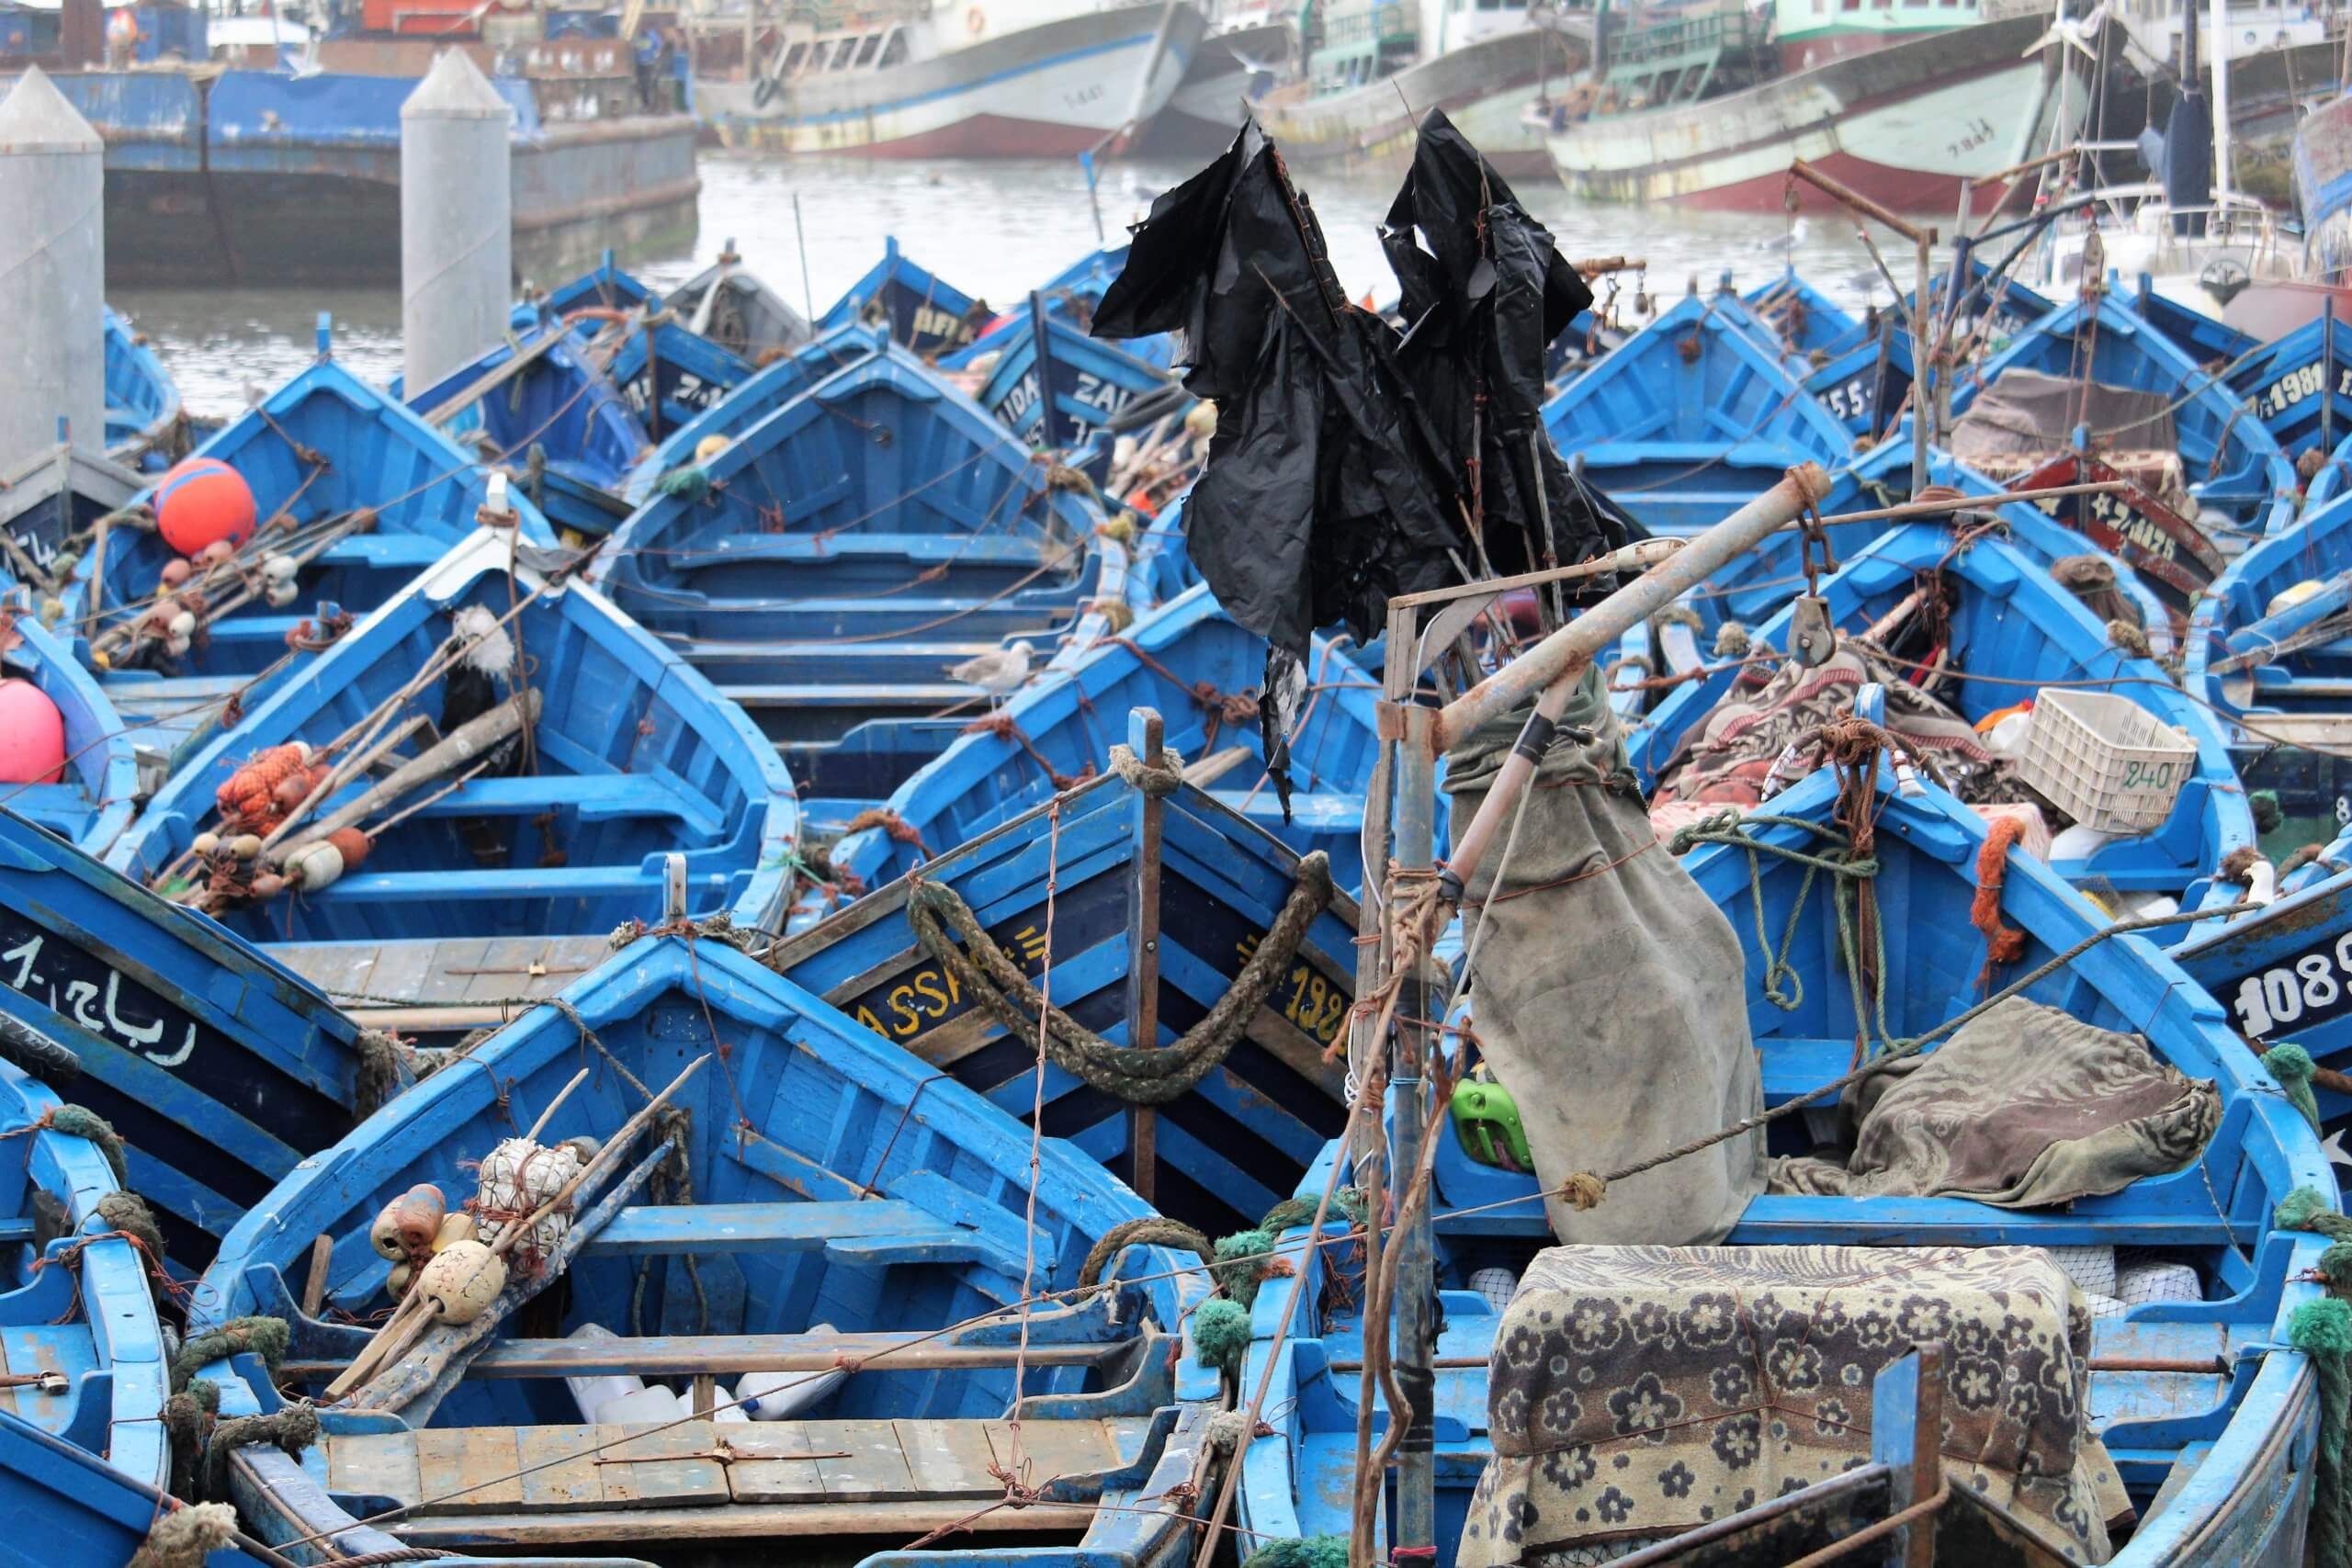 The Best Things to Do in Essaouira, Morocco - Happy Days Travel Blog